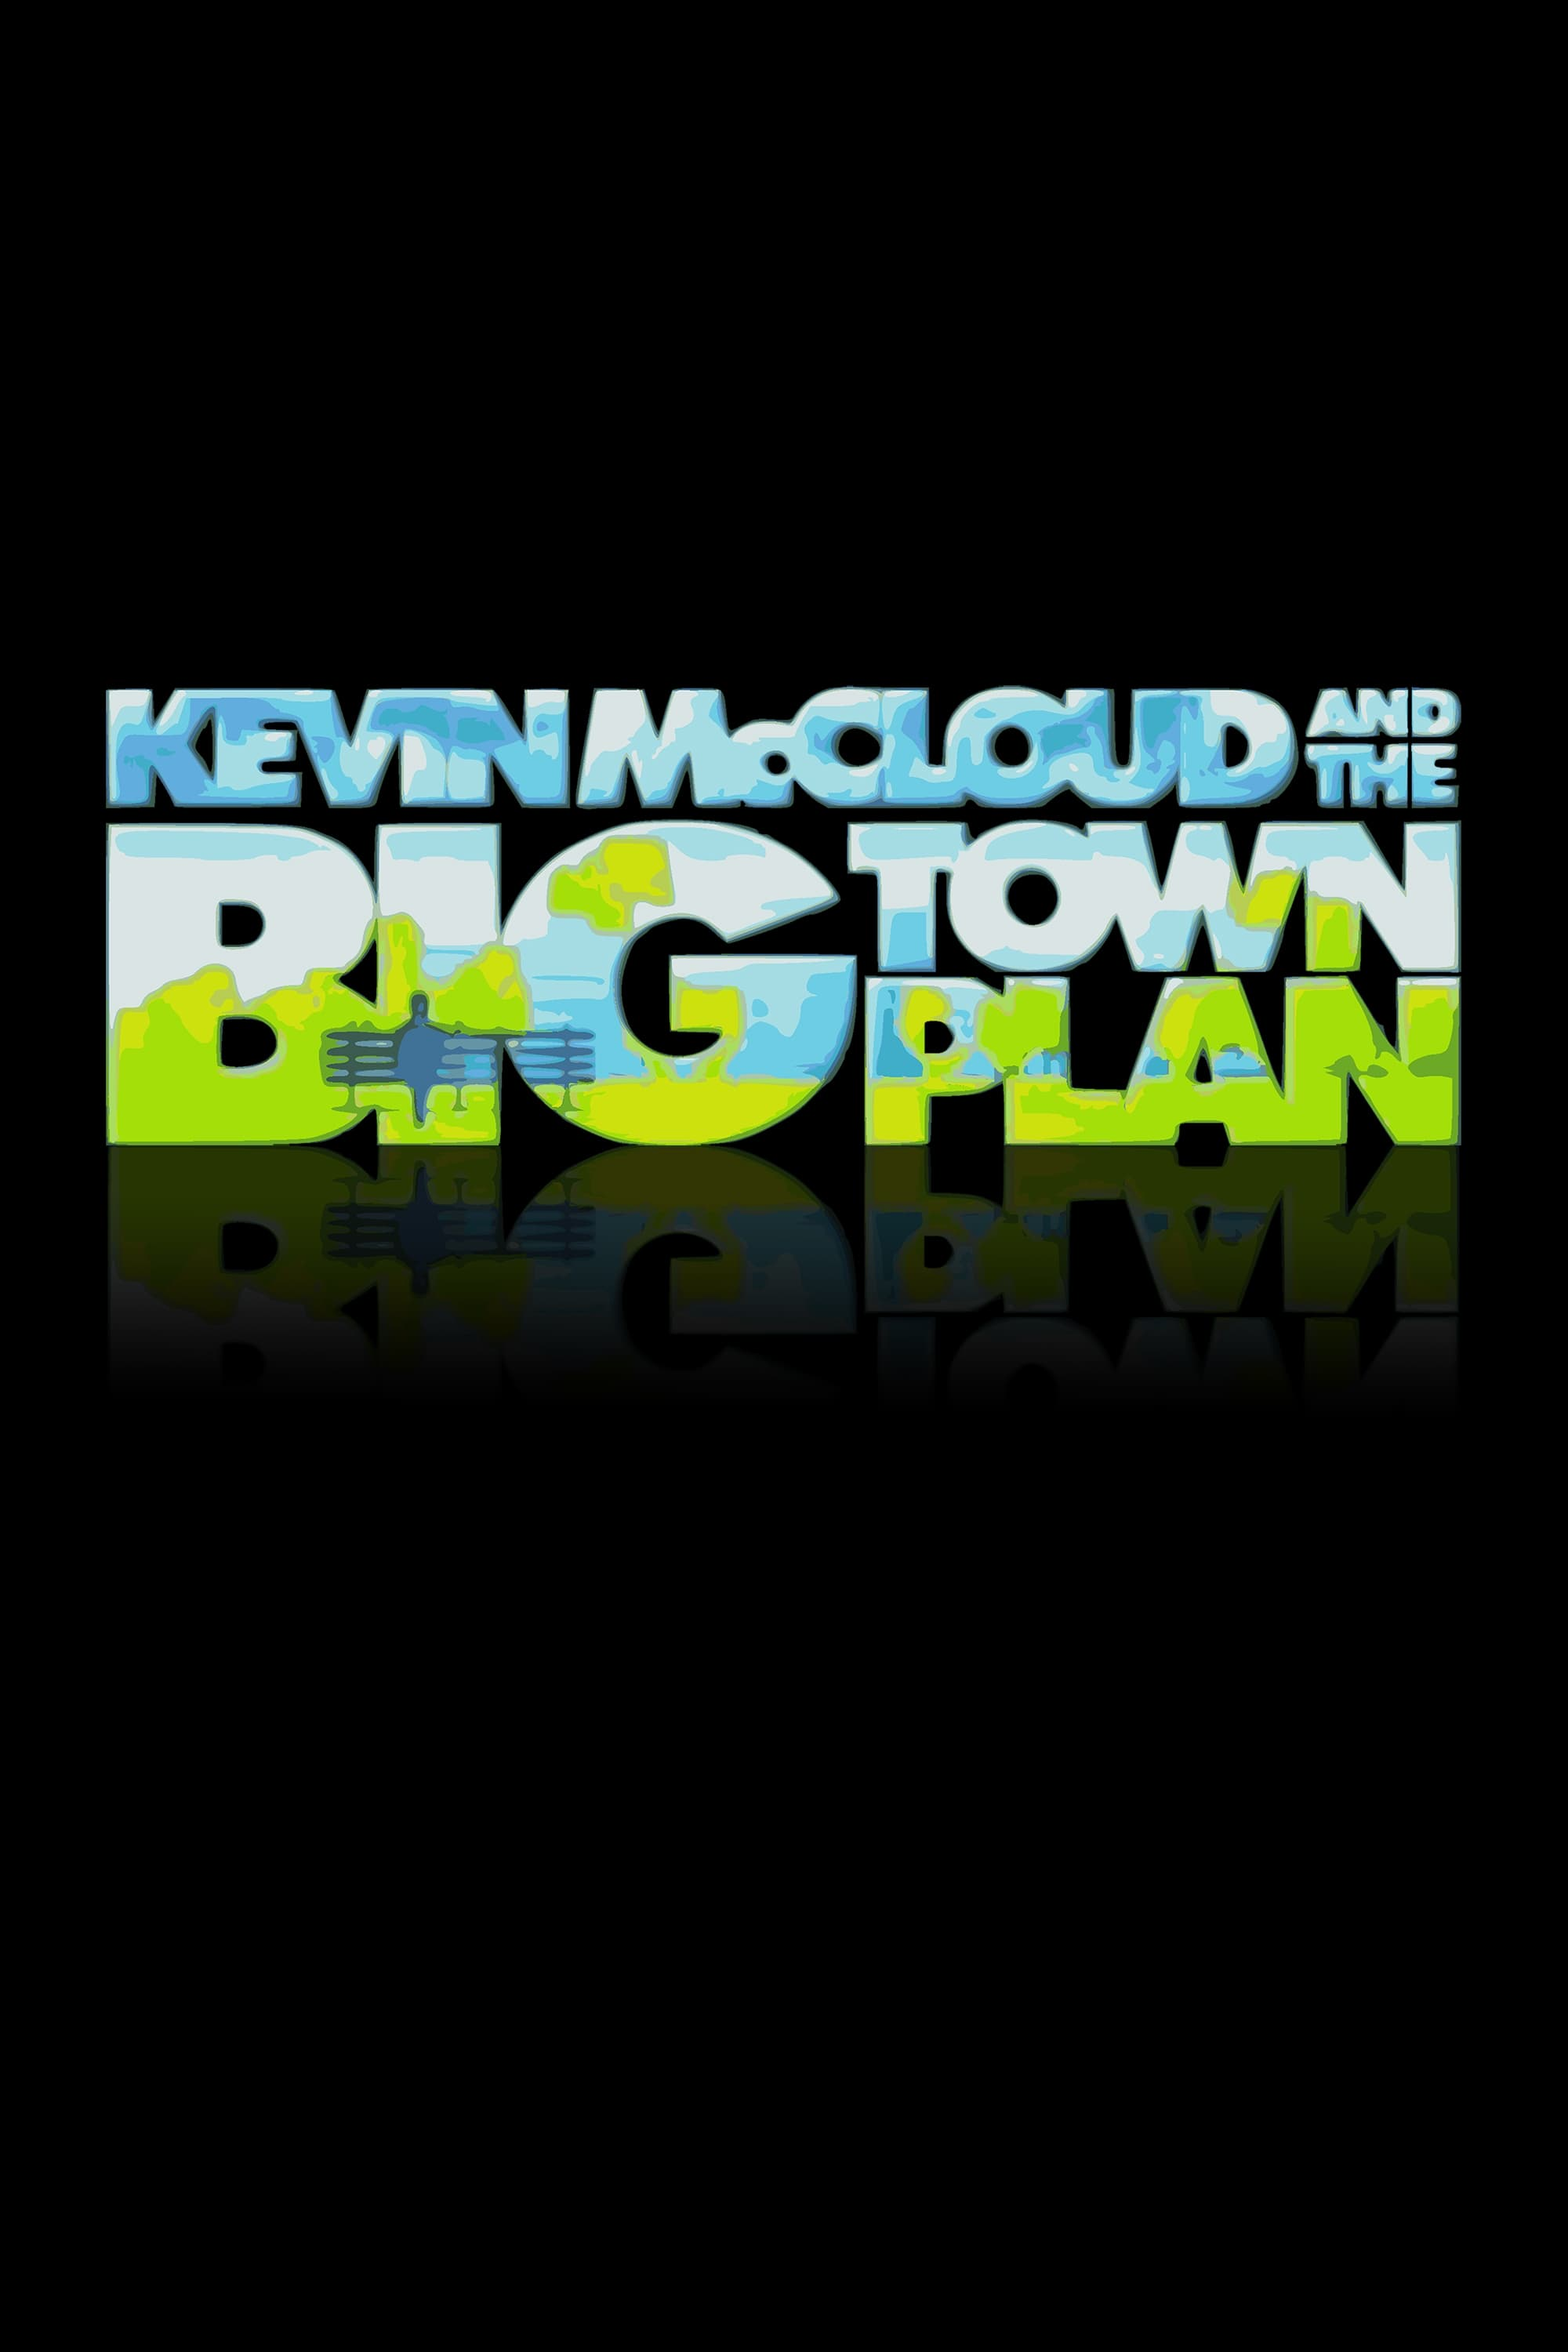 Kevin McCloud and the Big Town Plan (2008)